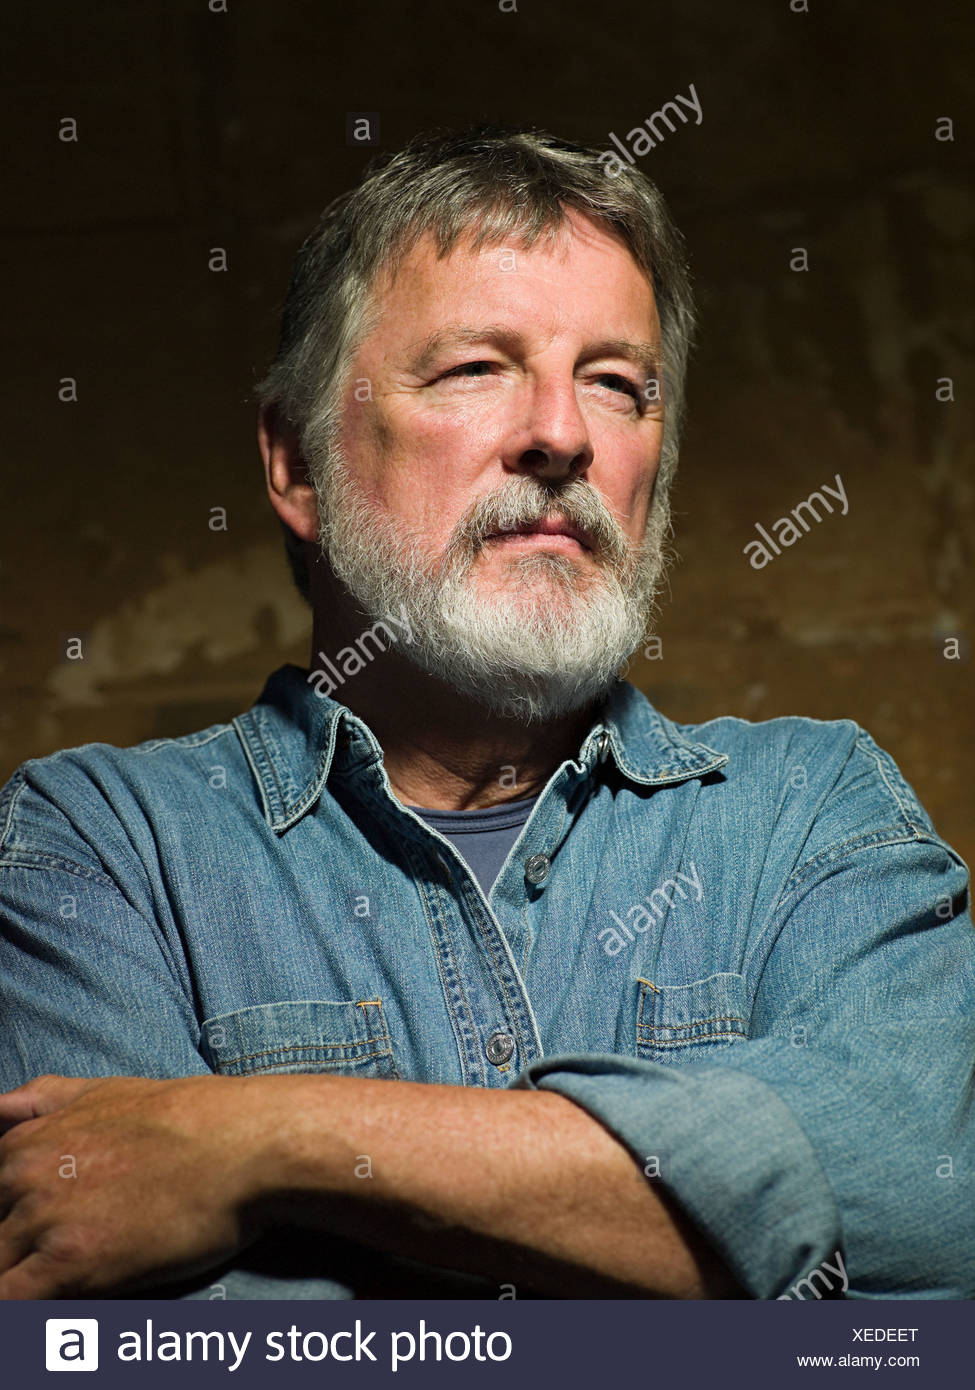 Man wearing a denim shirt - Stock Image